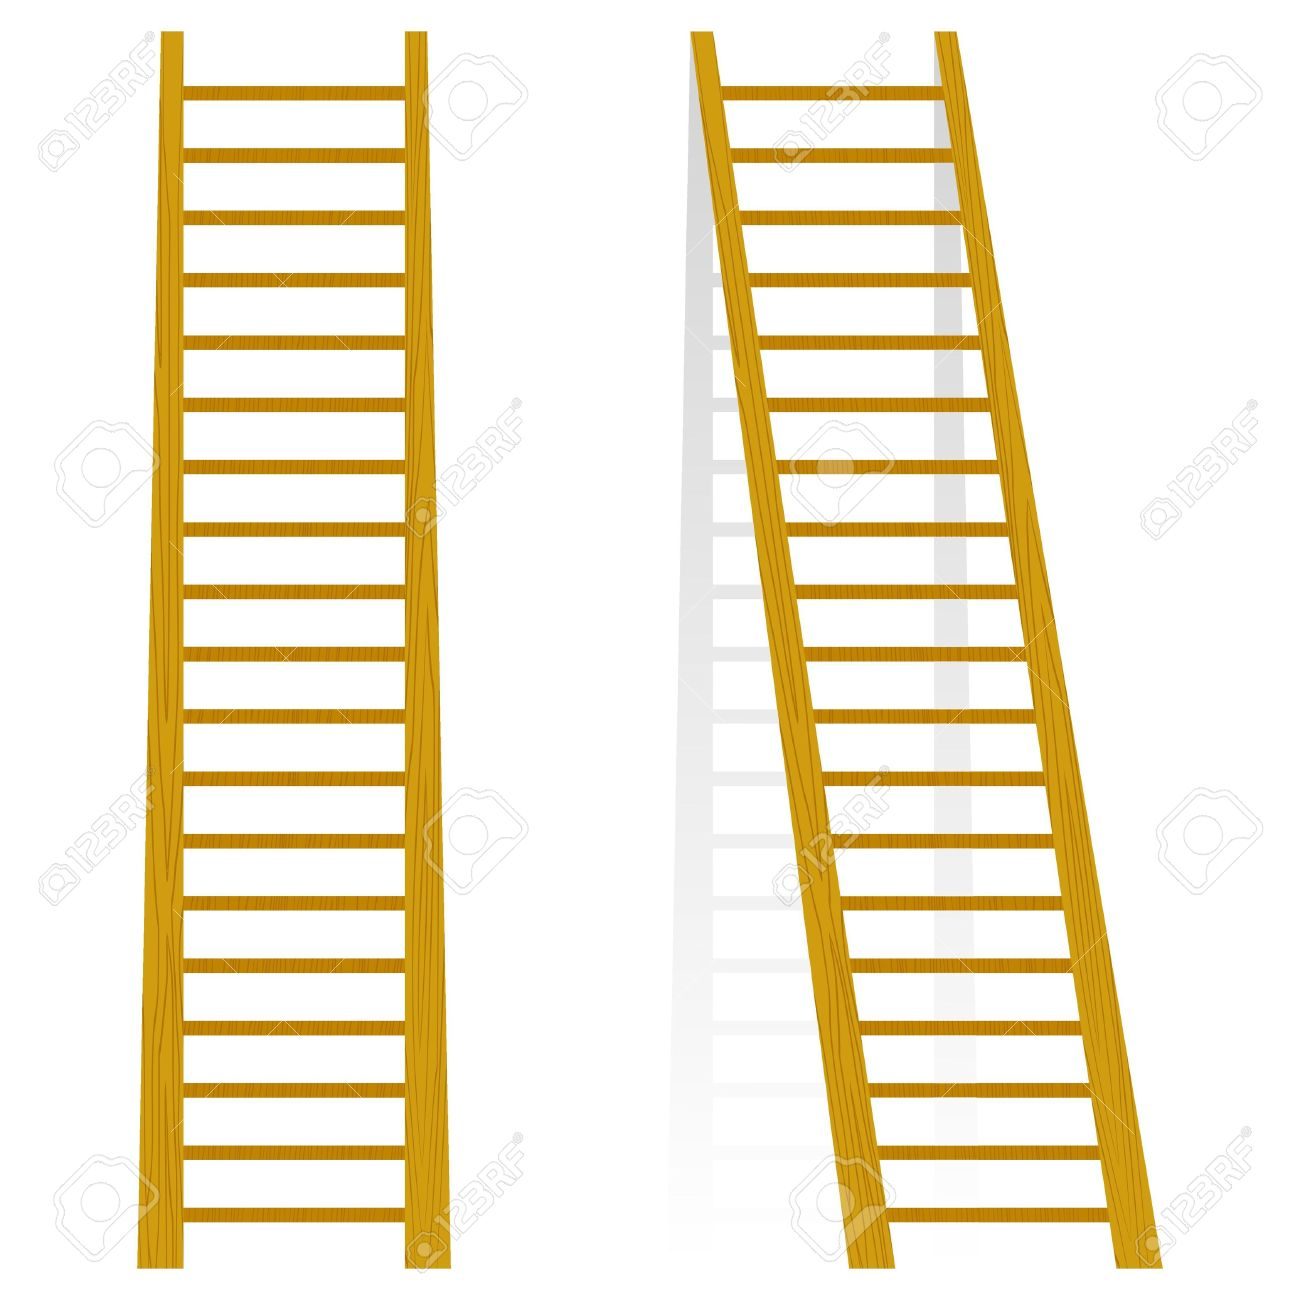 Vector Illustration Of A Wooden Staircase Royalty Free Cliparts.